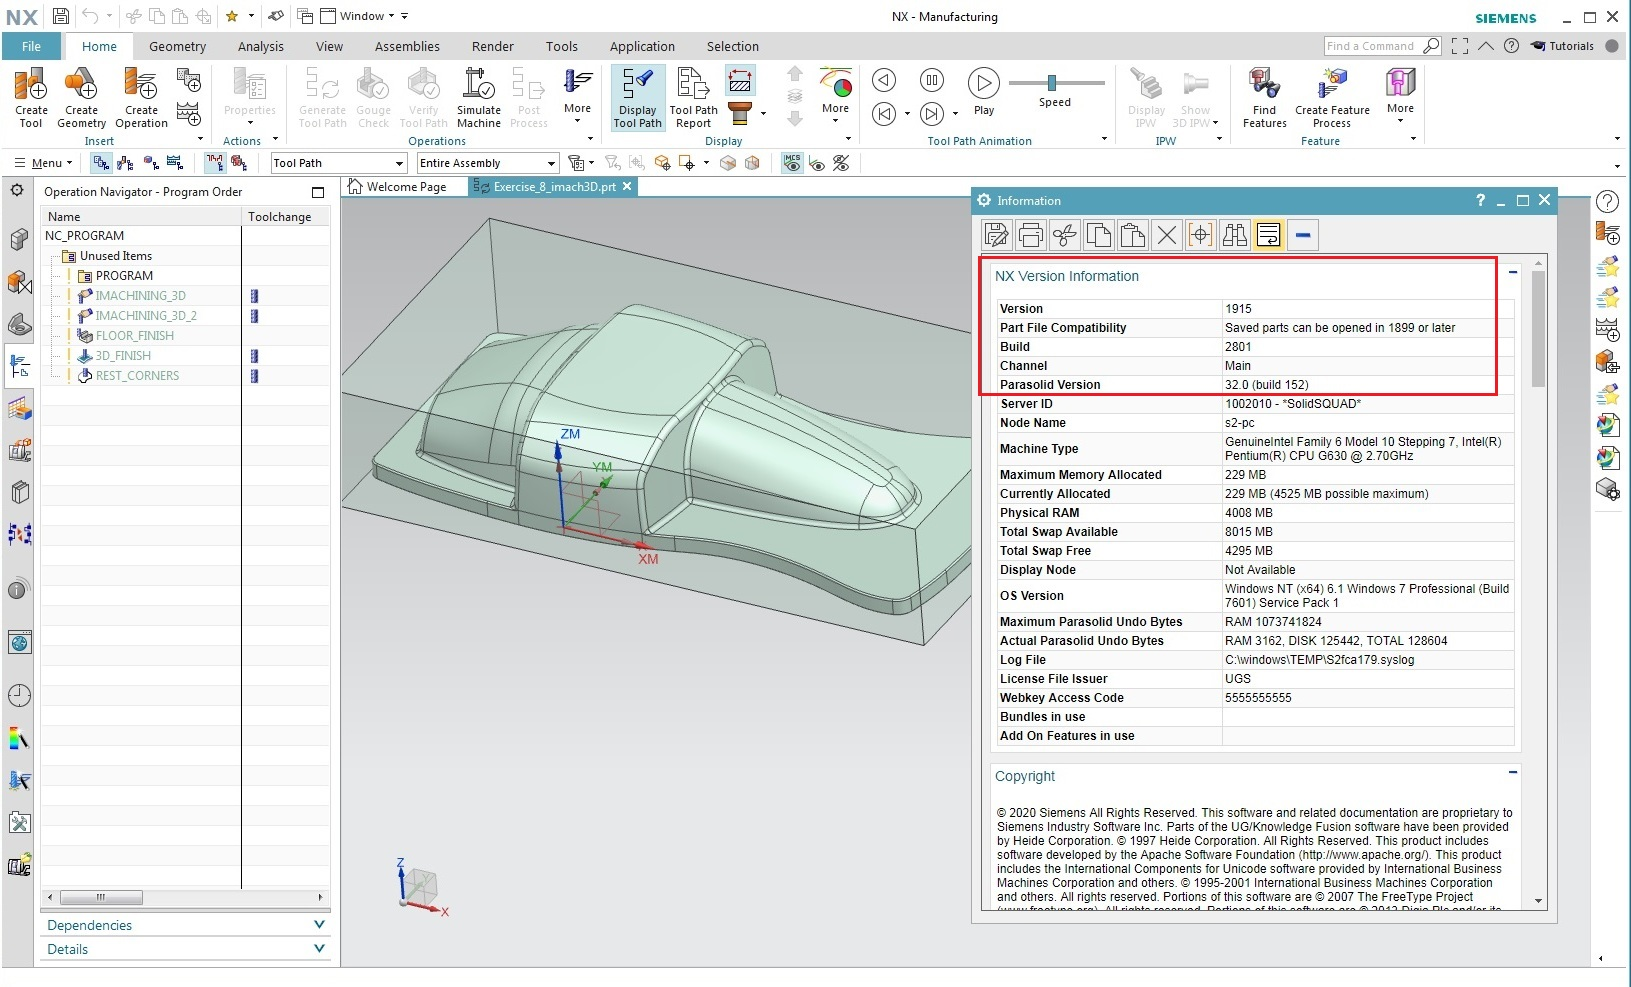 Working with Siemens NX 1915 Build 2801 full